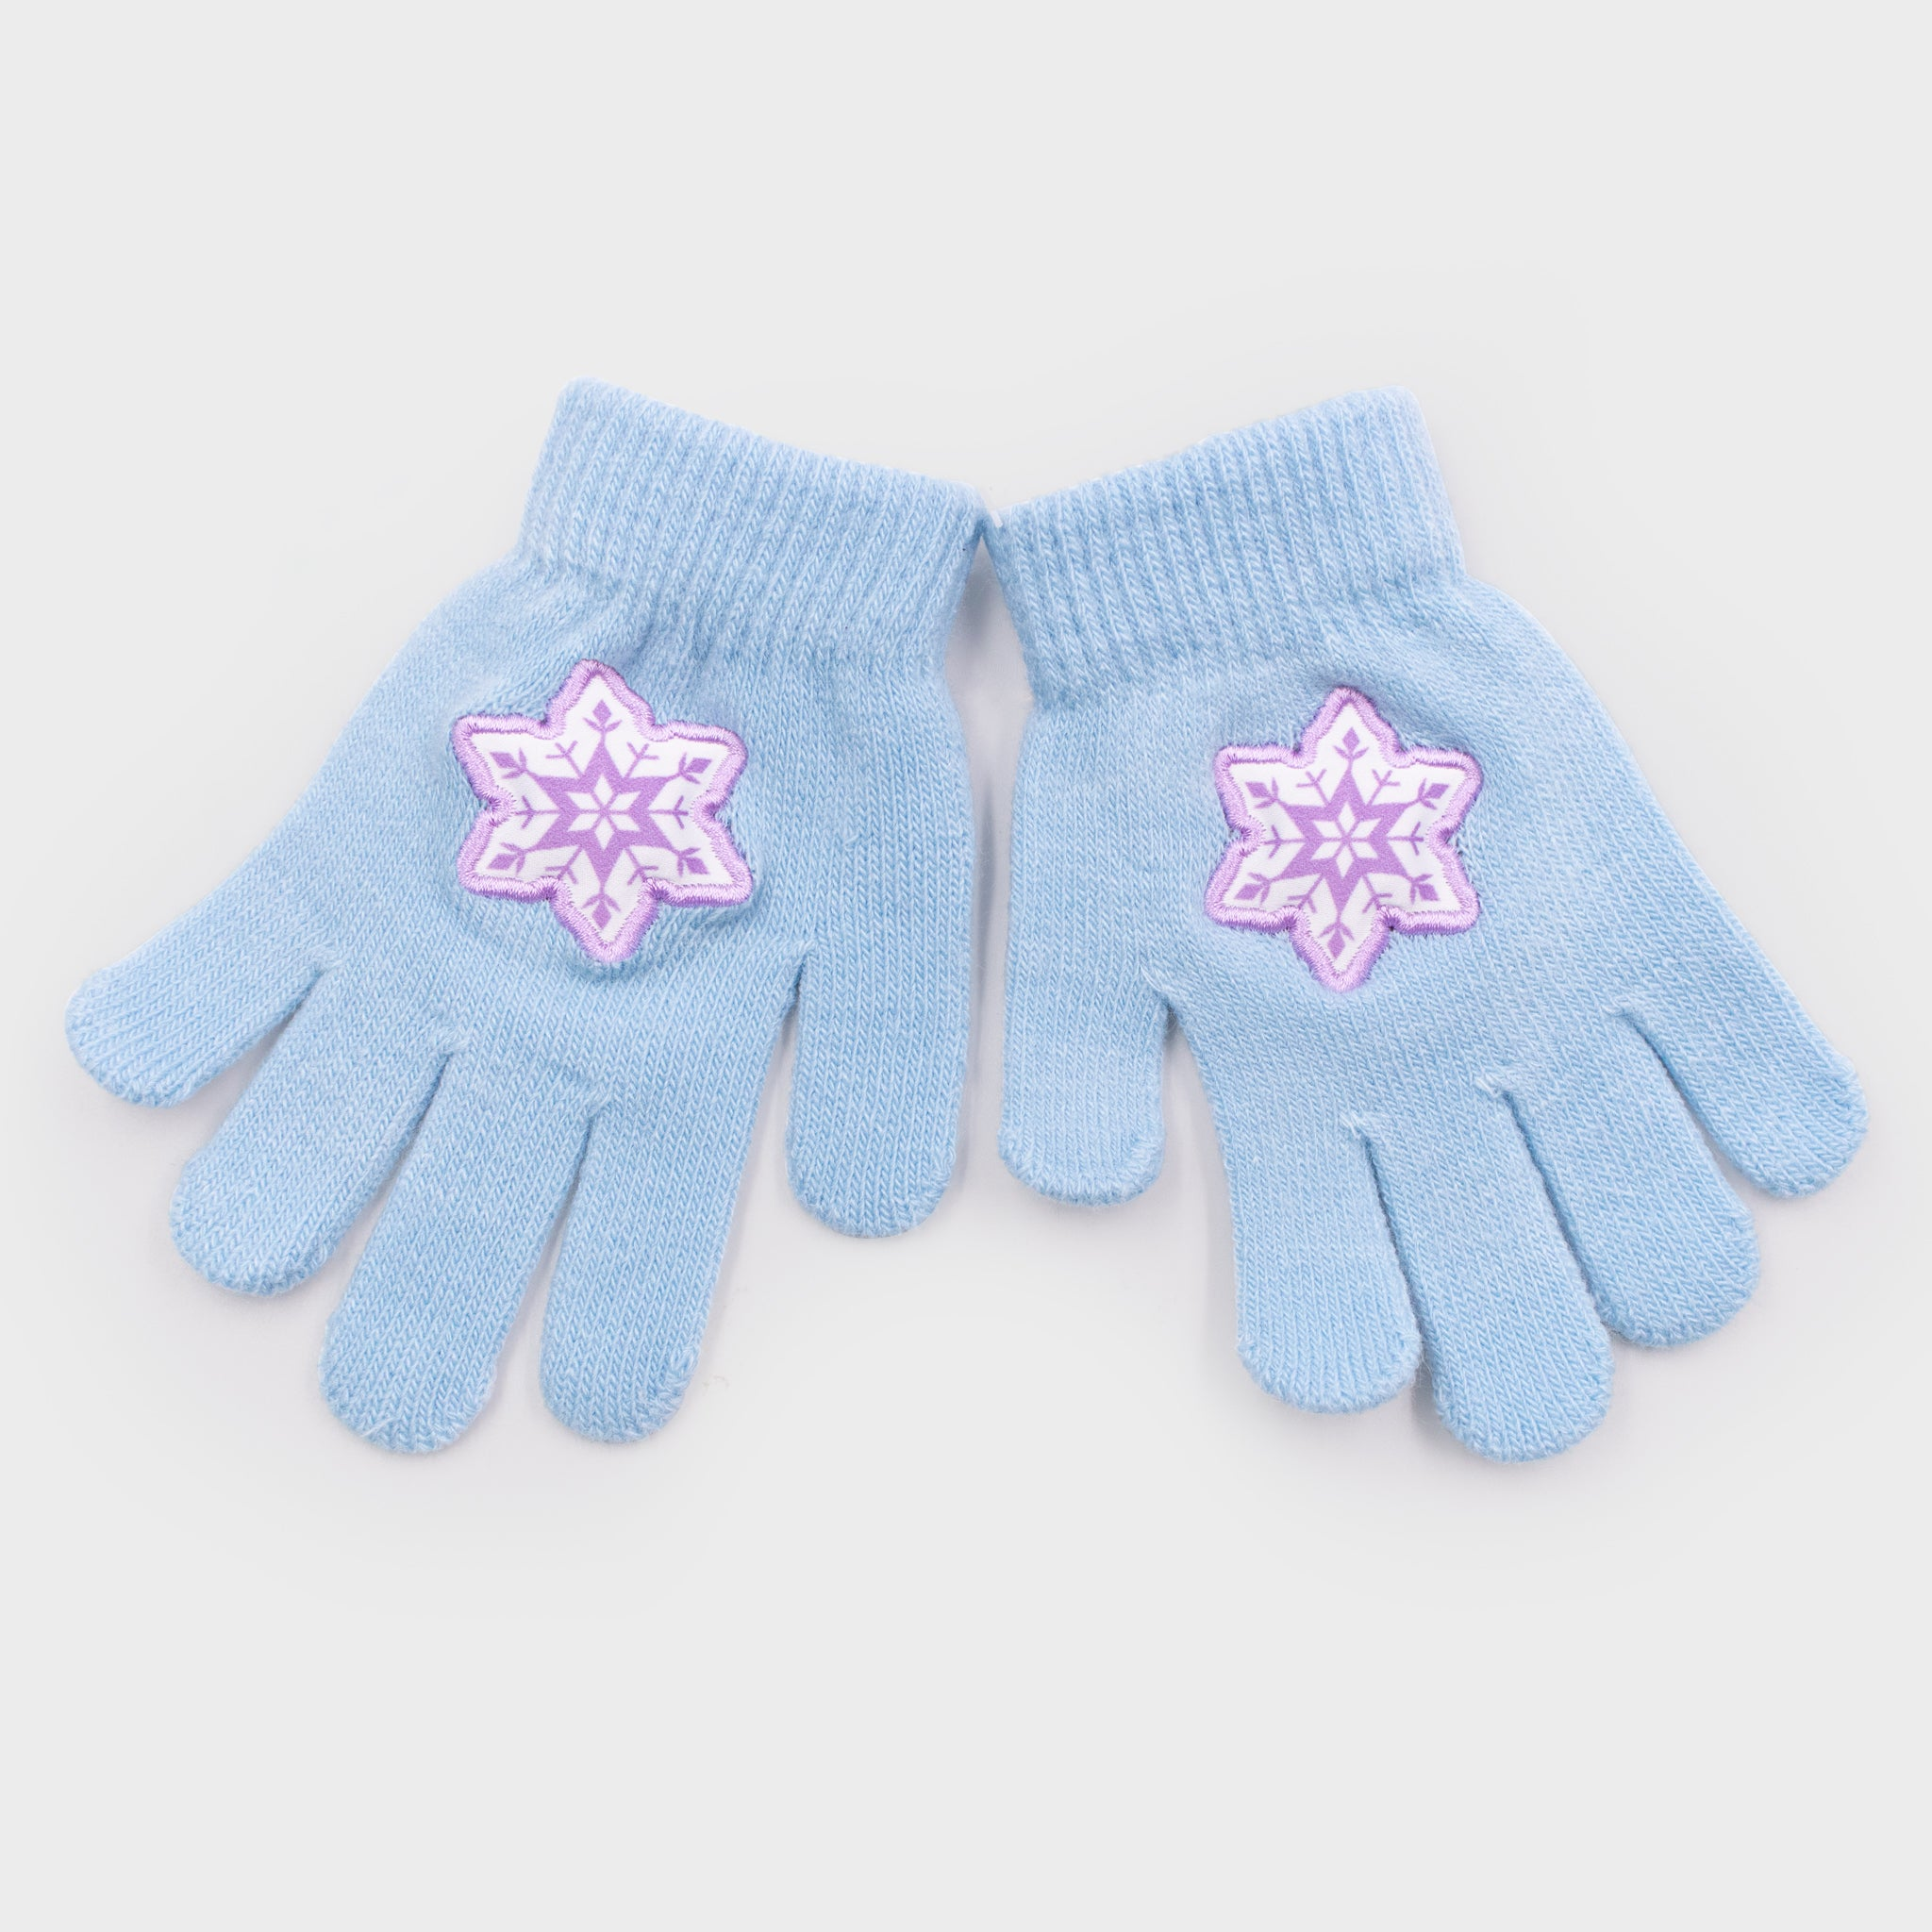 frozen ii frozen 2 disney elsa anna olaf disney princess winter let it go cold walmart retail box collectibles kids children exclusive accessory culturefly gloves